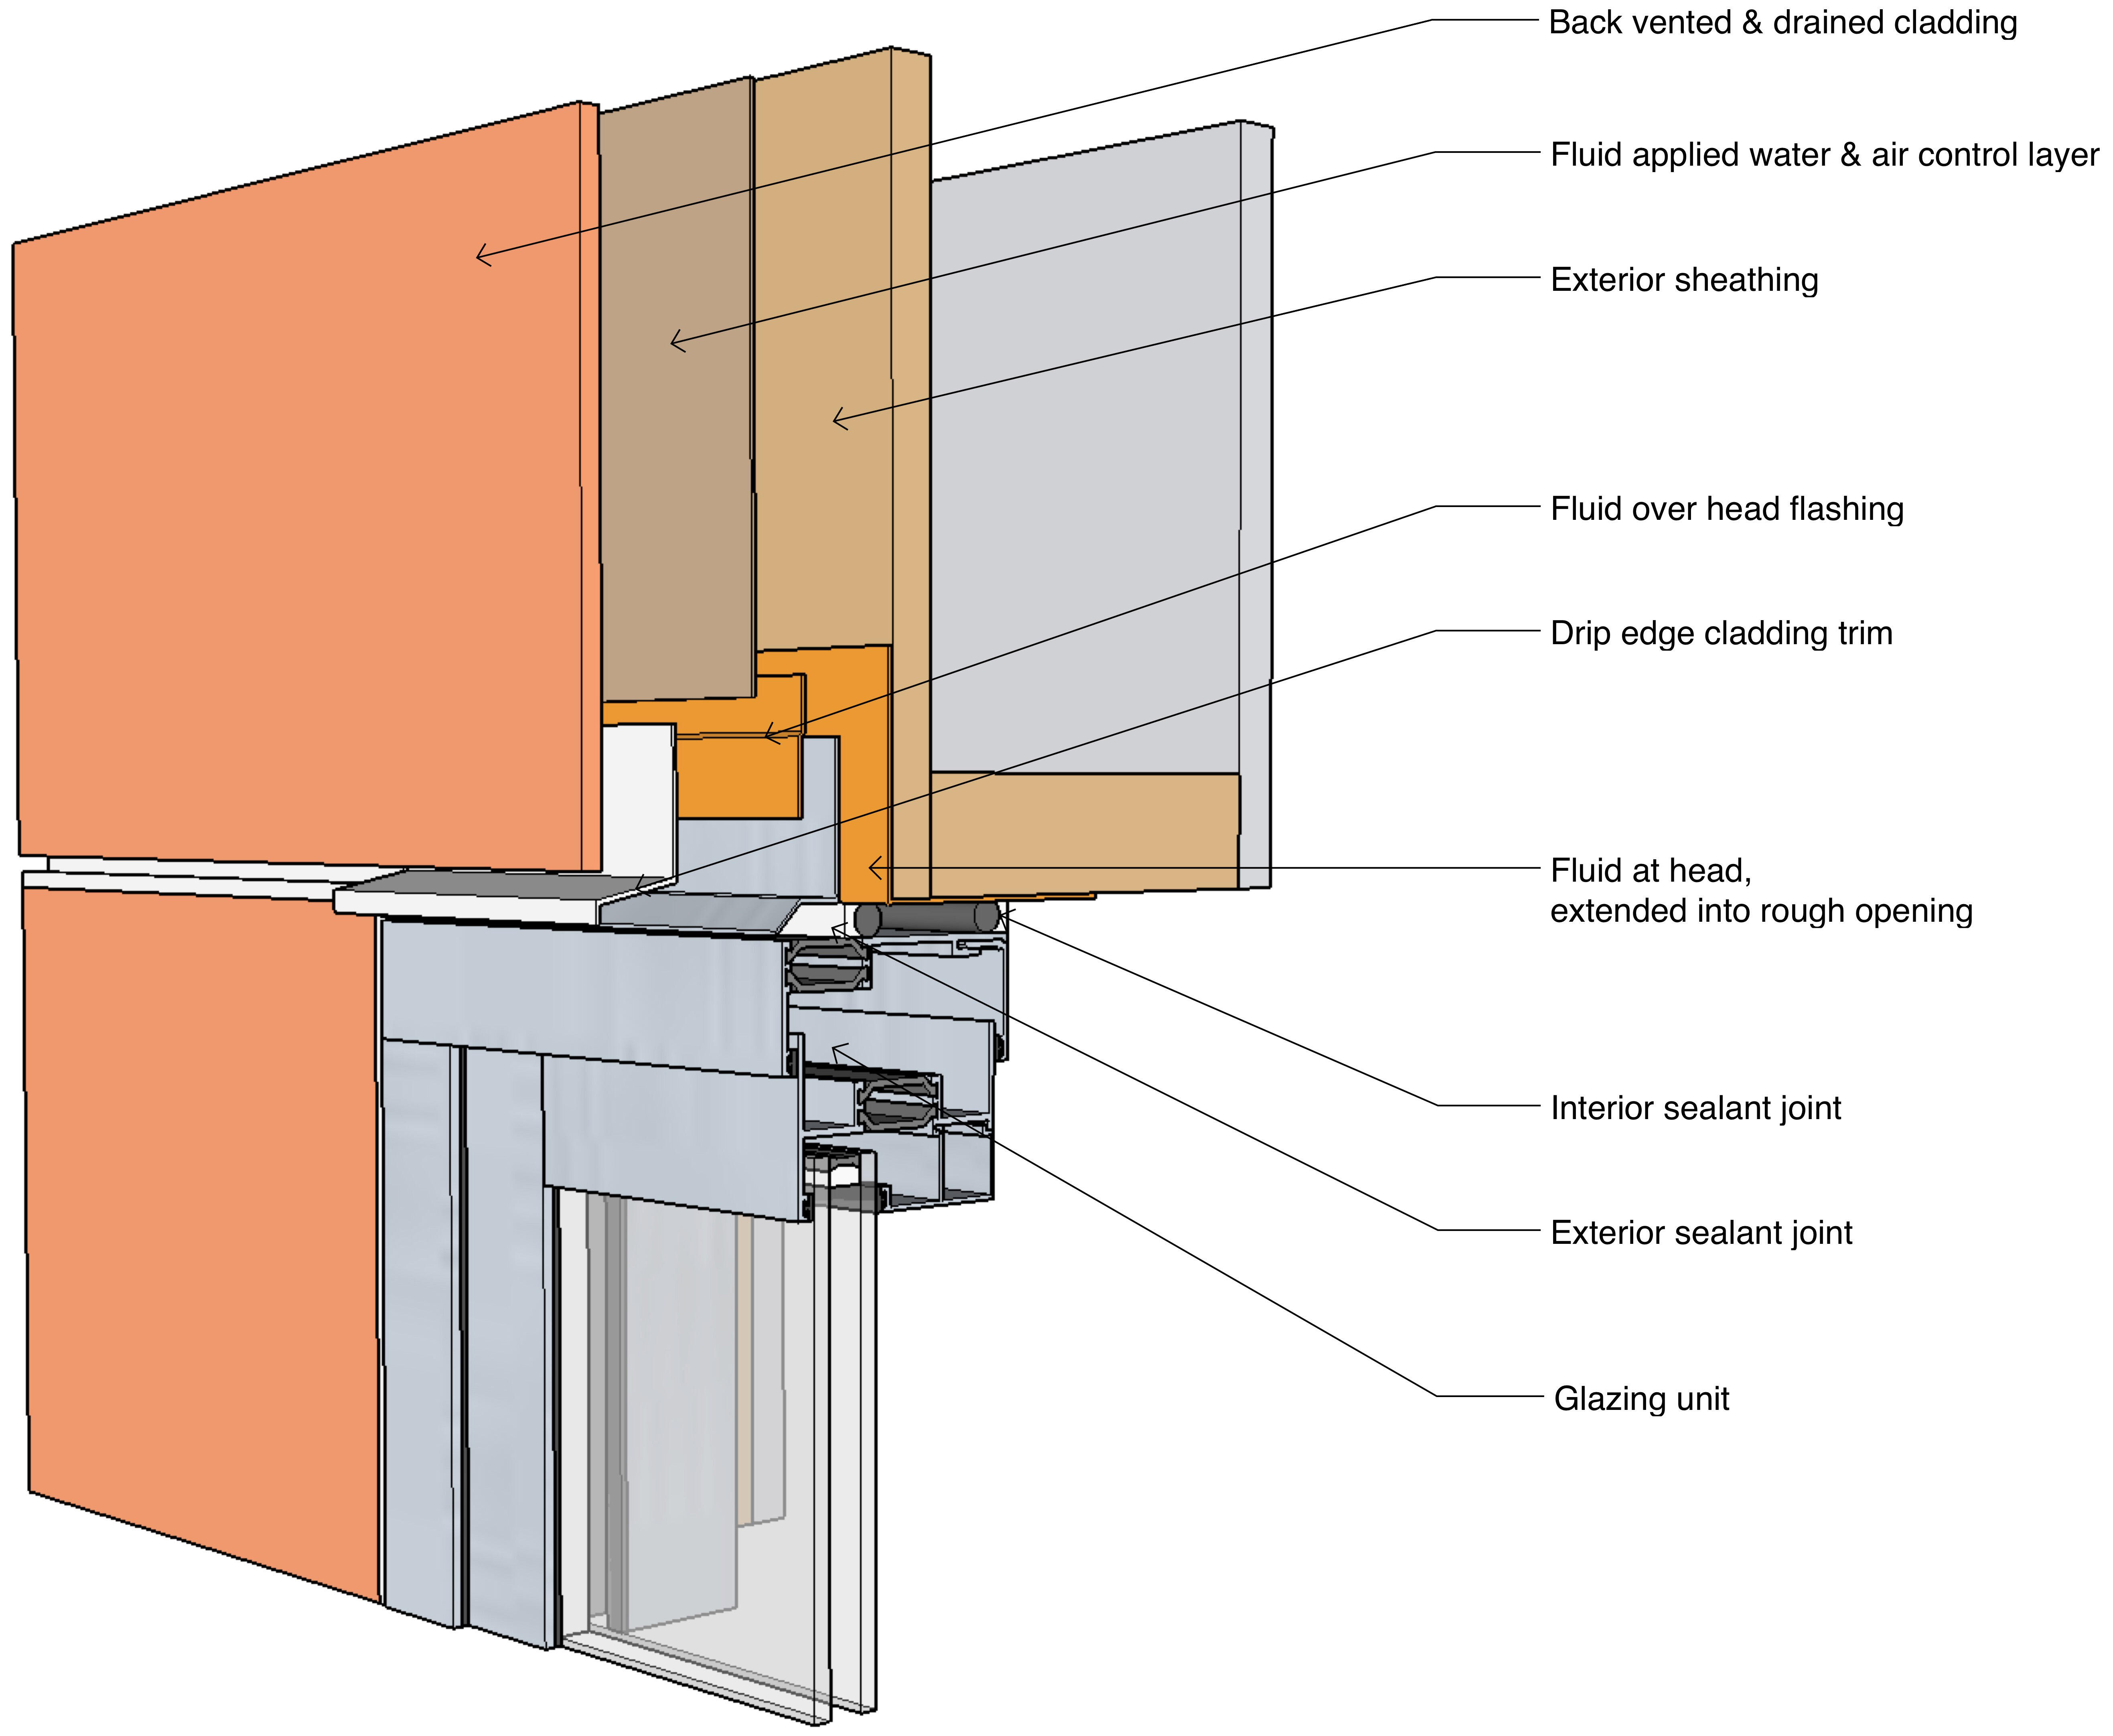 BSI-104: Punched Openings | Building Science Corporation